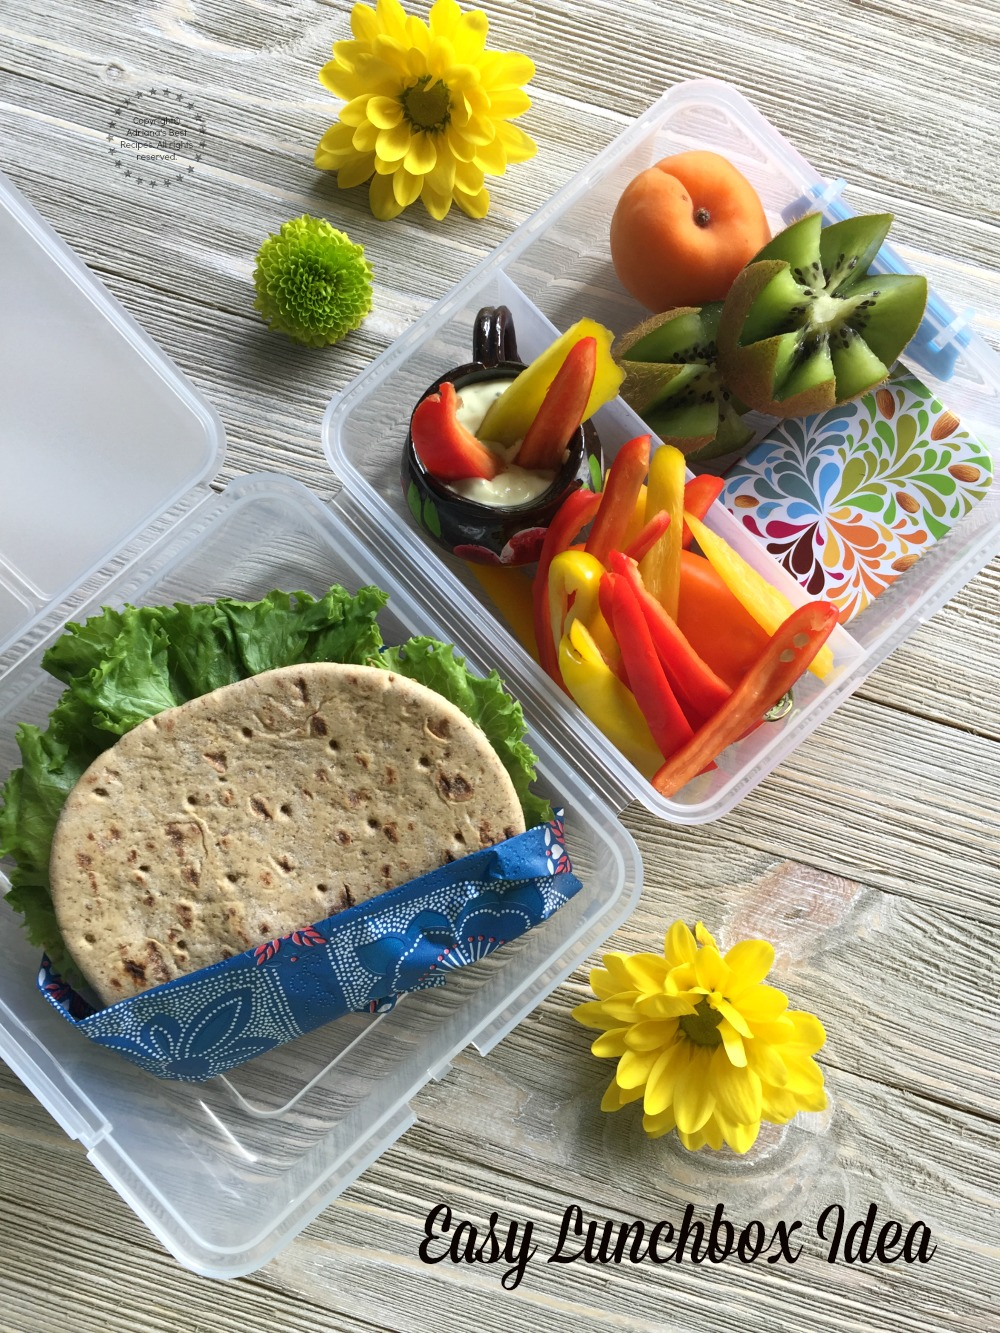 This back to school season we are proposing an easy lunchbox idea for powering our lunchbox and taking the pledge for packing a healthier yummy lunch